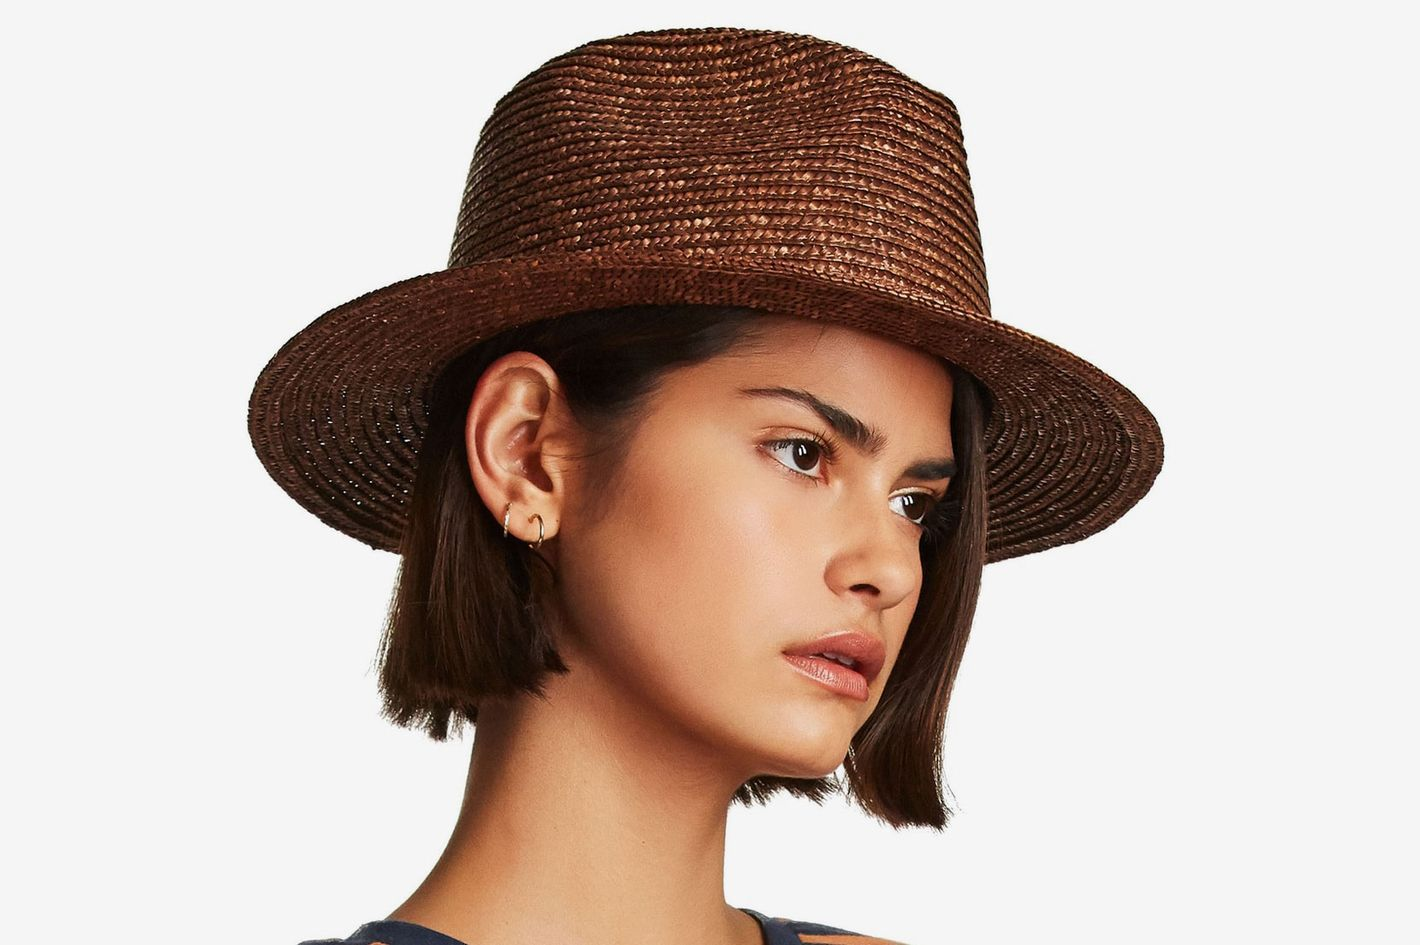 28 Best Sun Hats 2018 — Woven Straw Hats 81ee6bed5eb